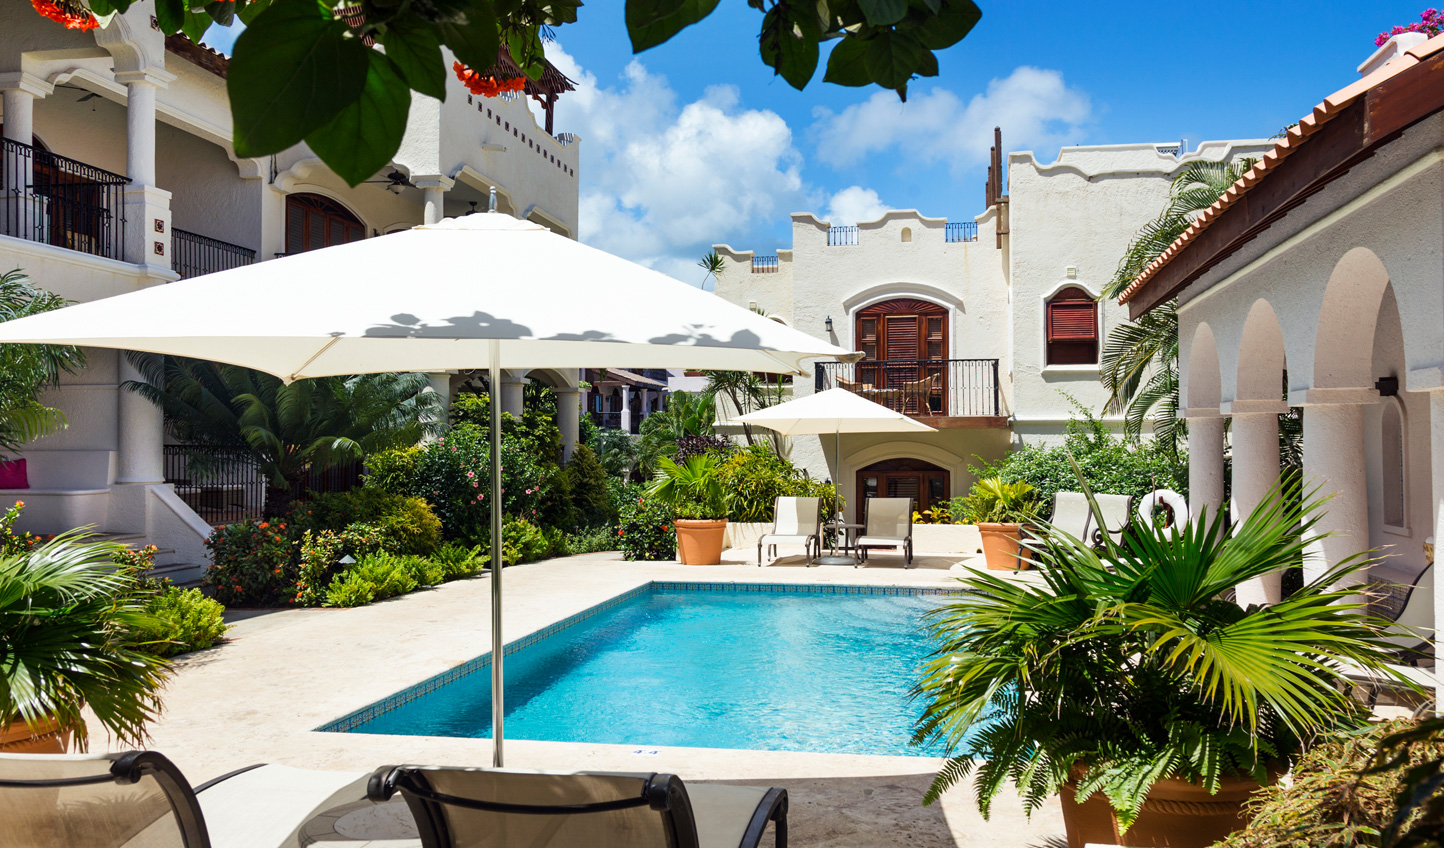 Or relax by the courtyard swimming pool